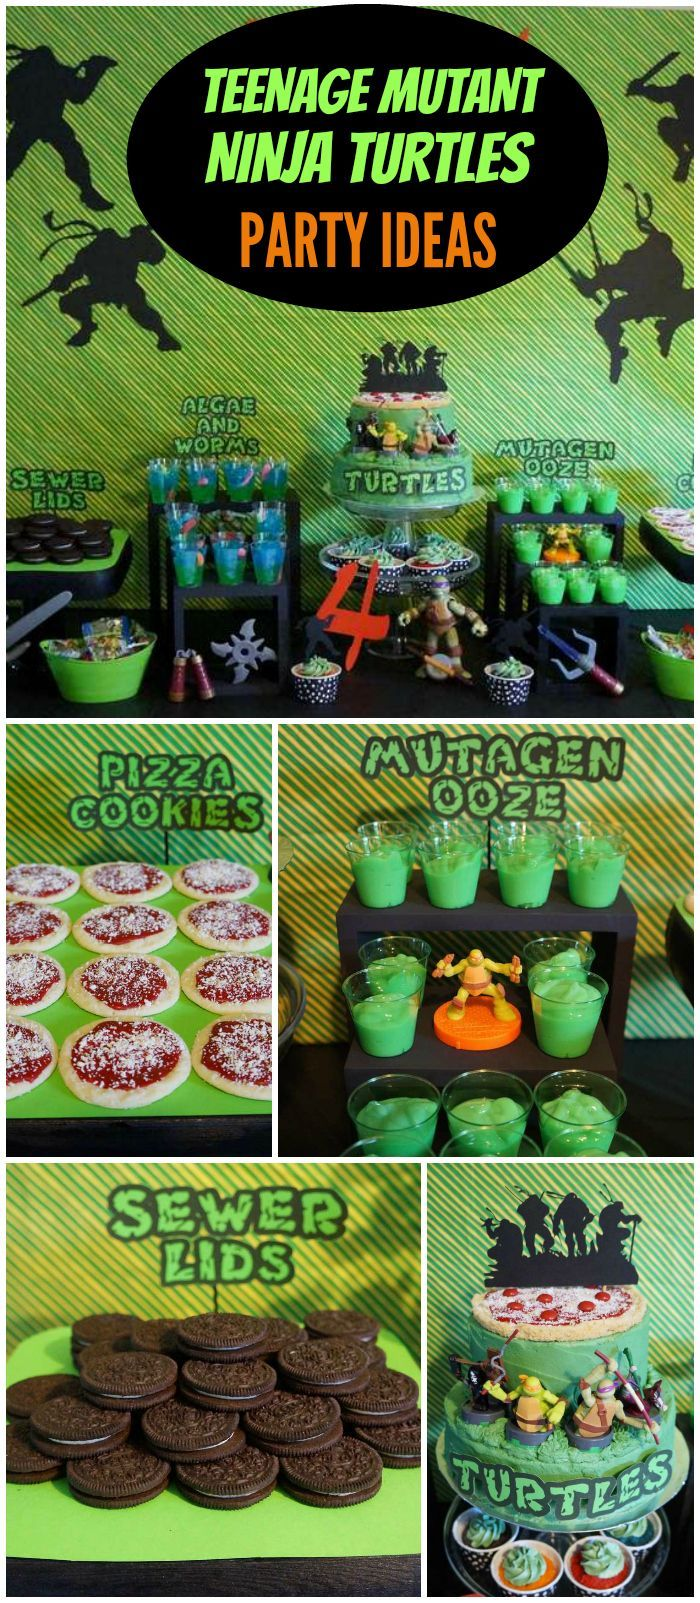 Check out this totally awesome Teenage Mutant Ninja Turtles party!